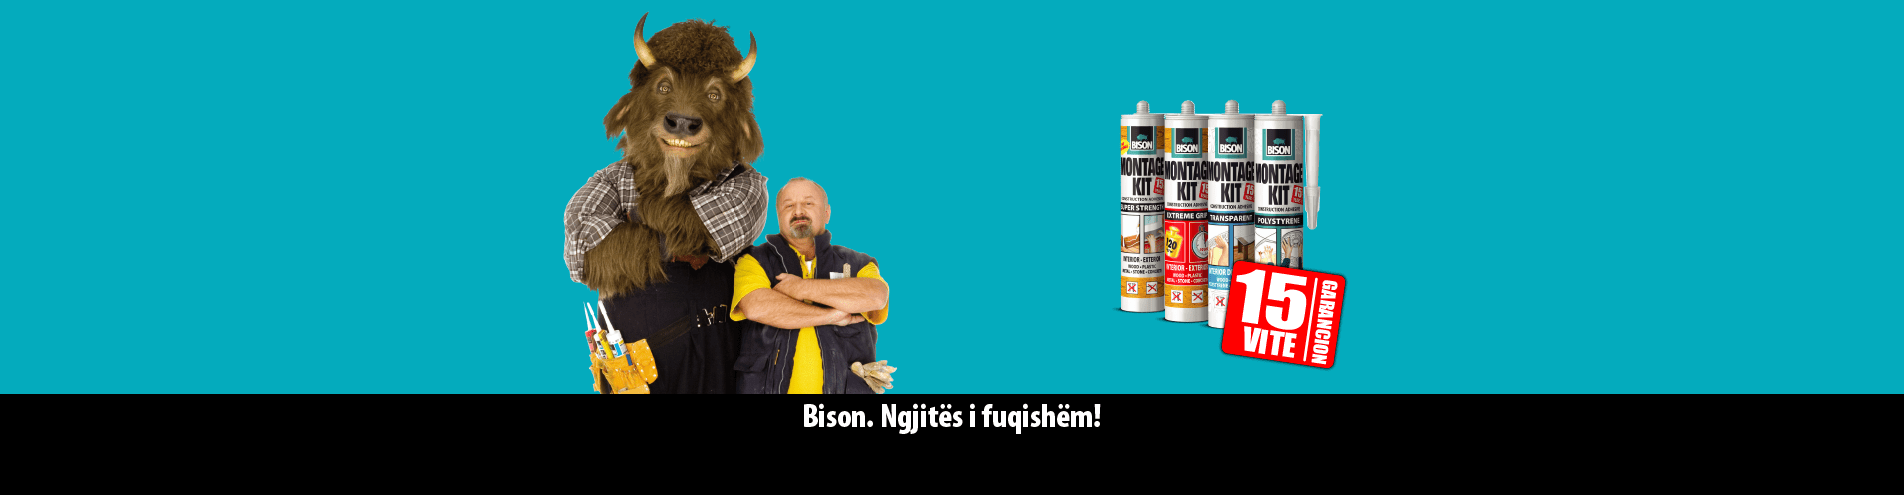 Bison Montagekit Super Bucaj Buçaj Corporation Is The Leading Kosovar Company In